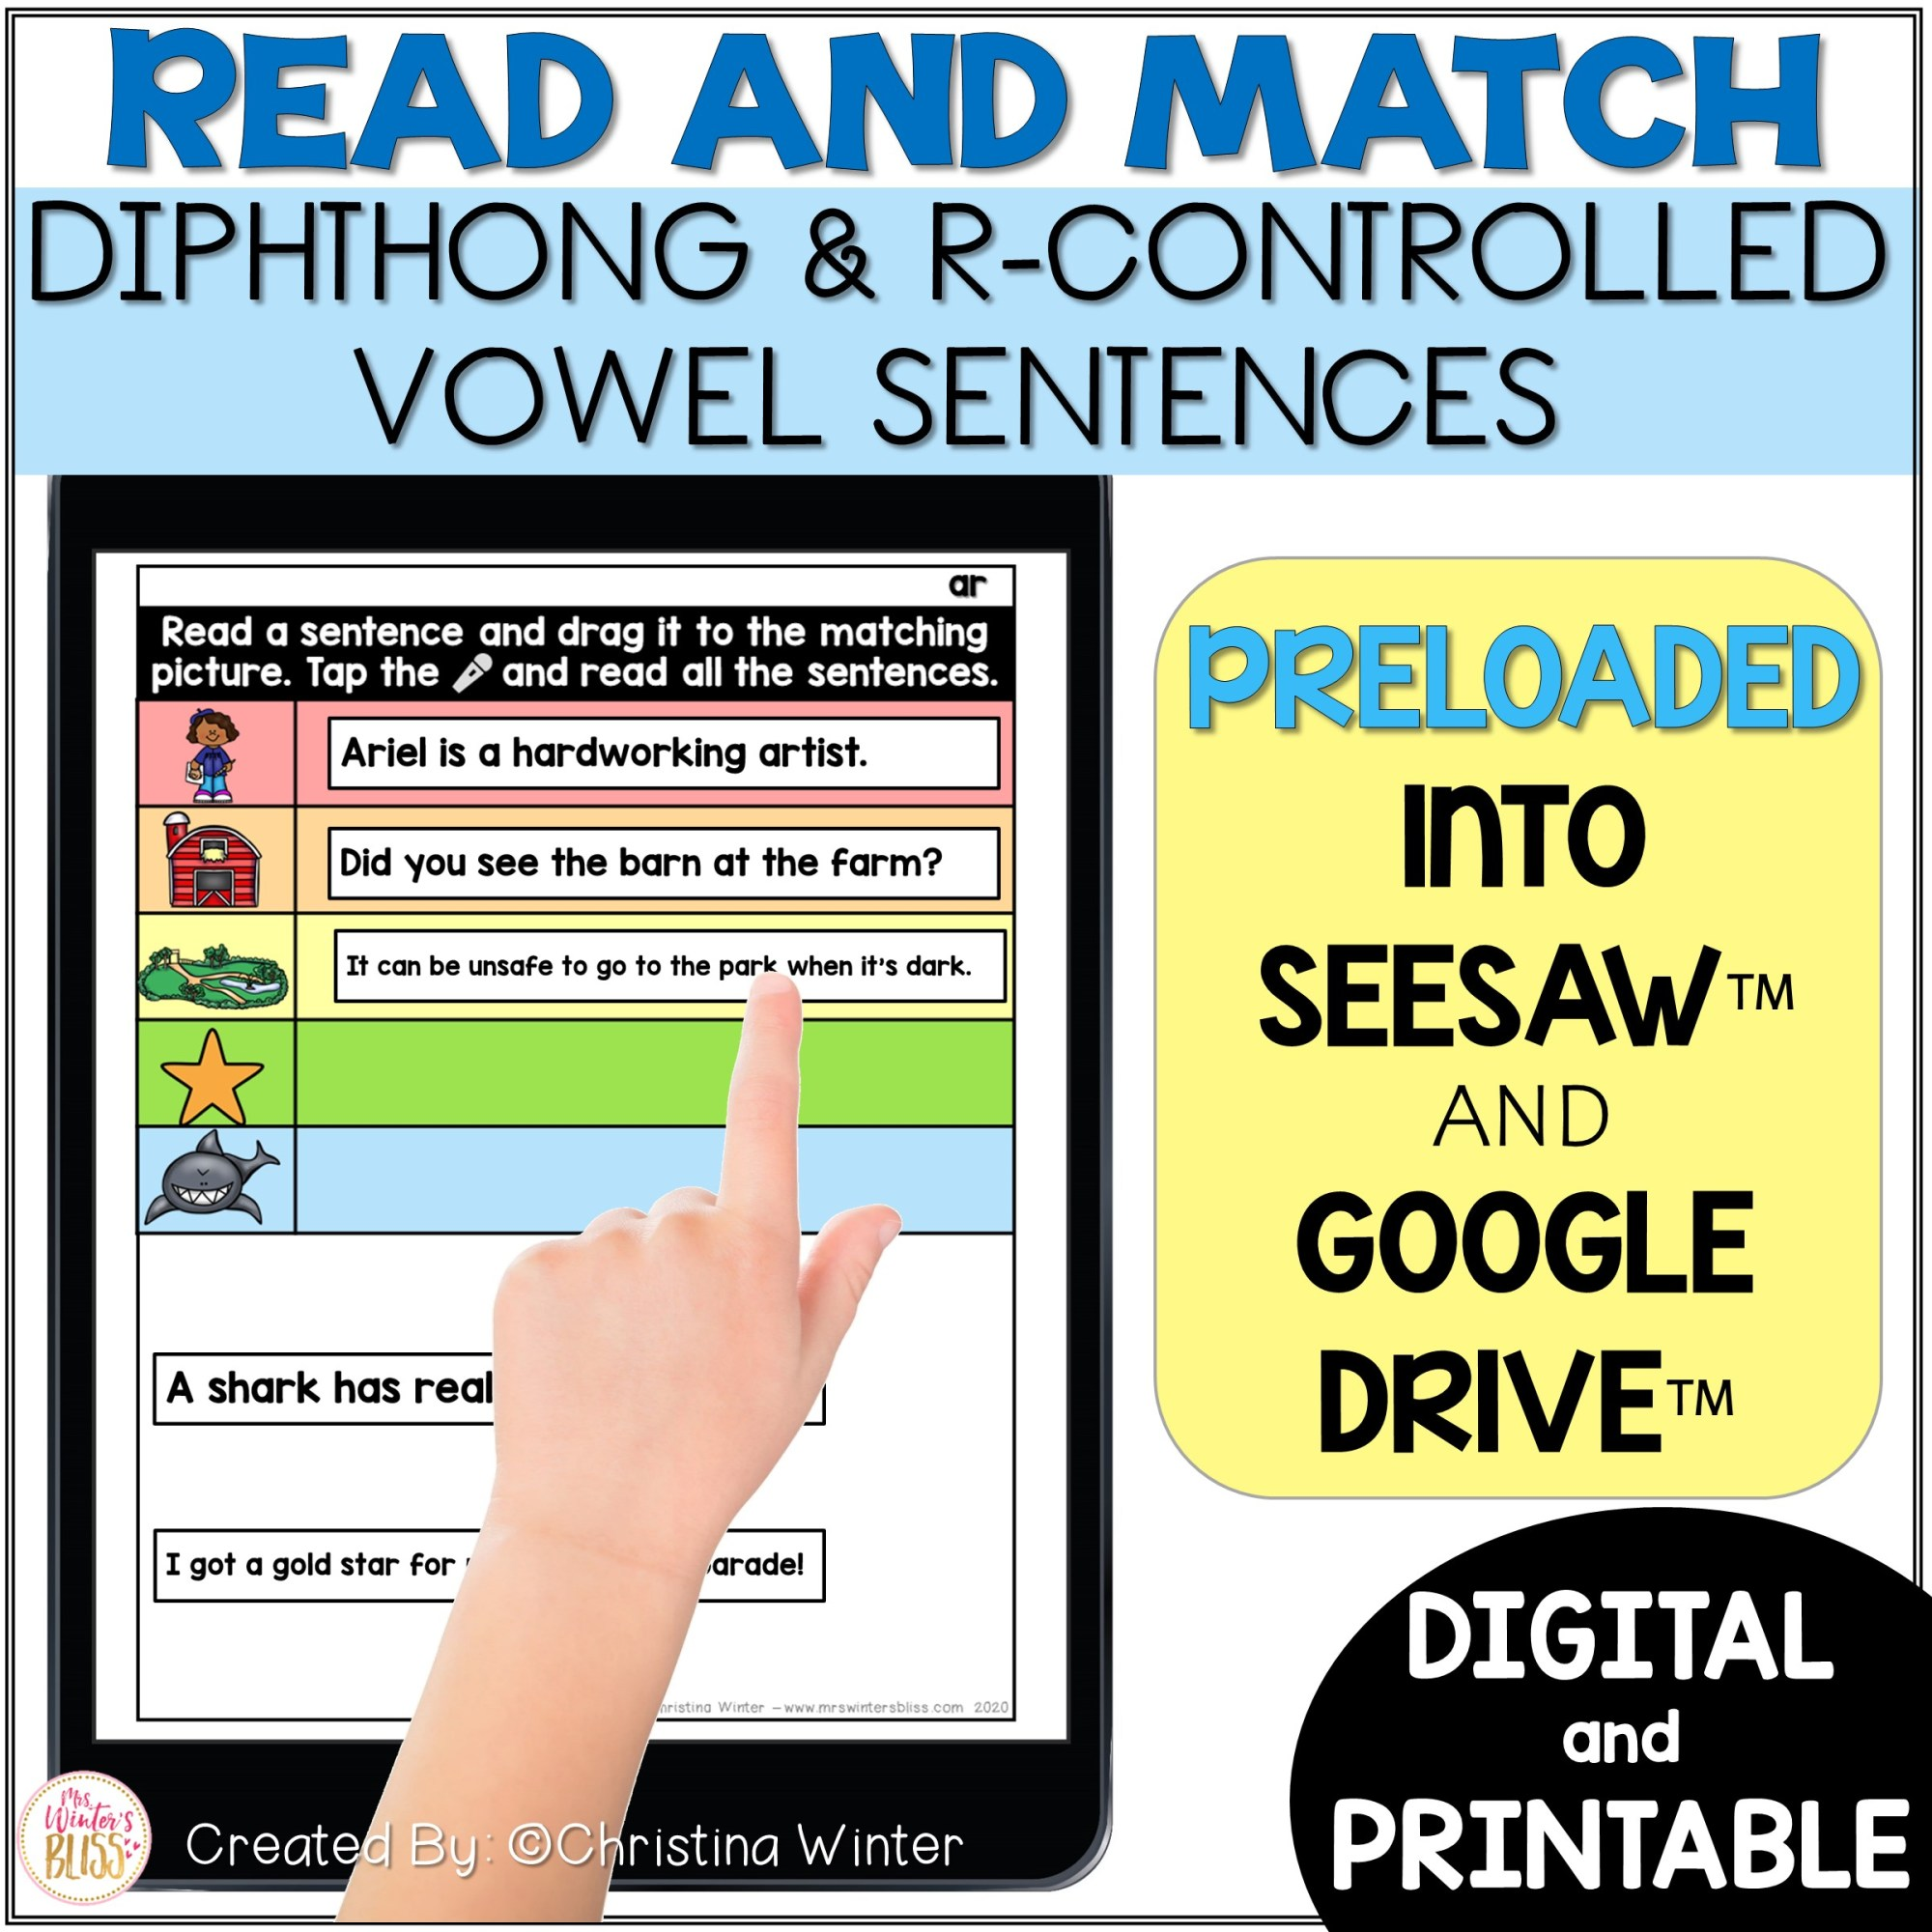 hight resolution of Digital \u0026 Printable Phonics - Diphthong \u0026 R-Controlled Vowel Sentences -  Mrs. Winter's Bliss